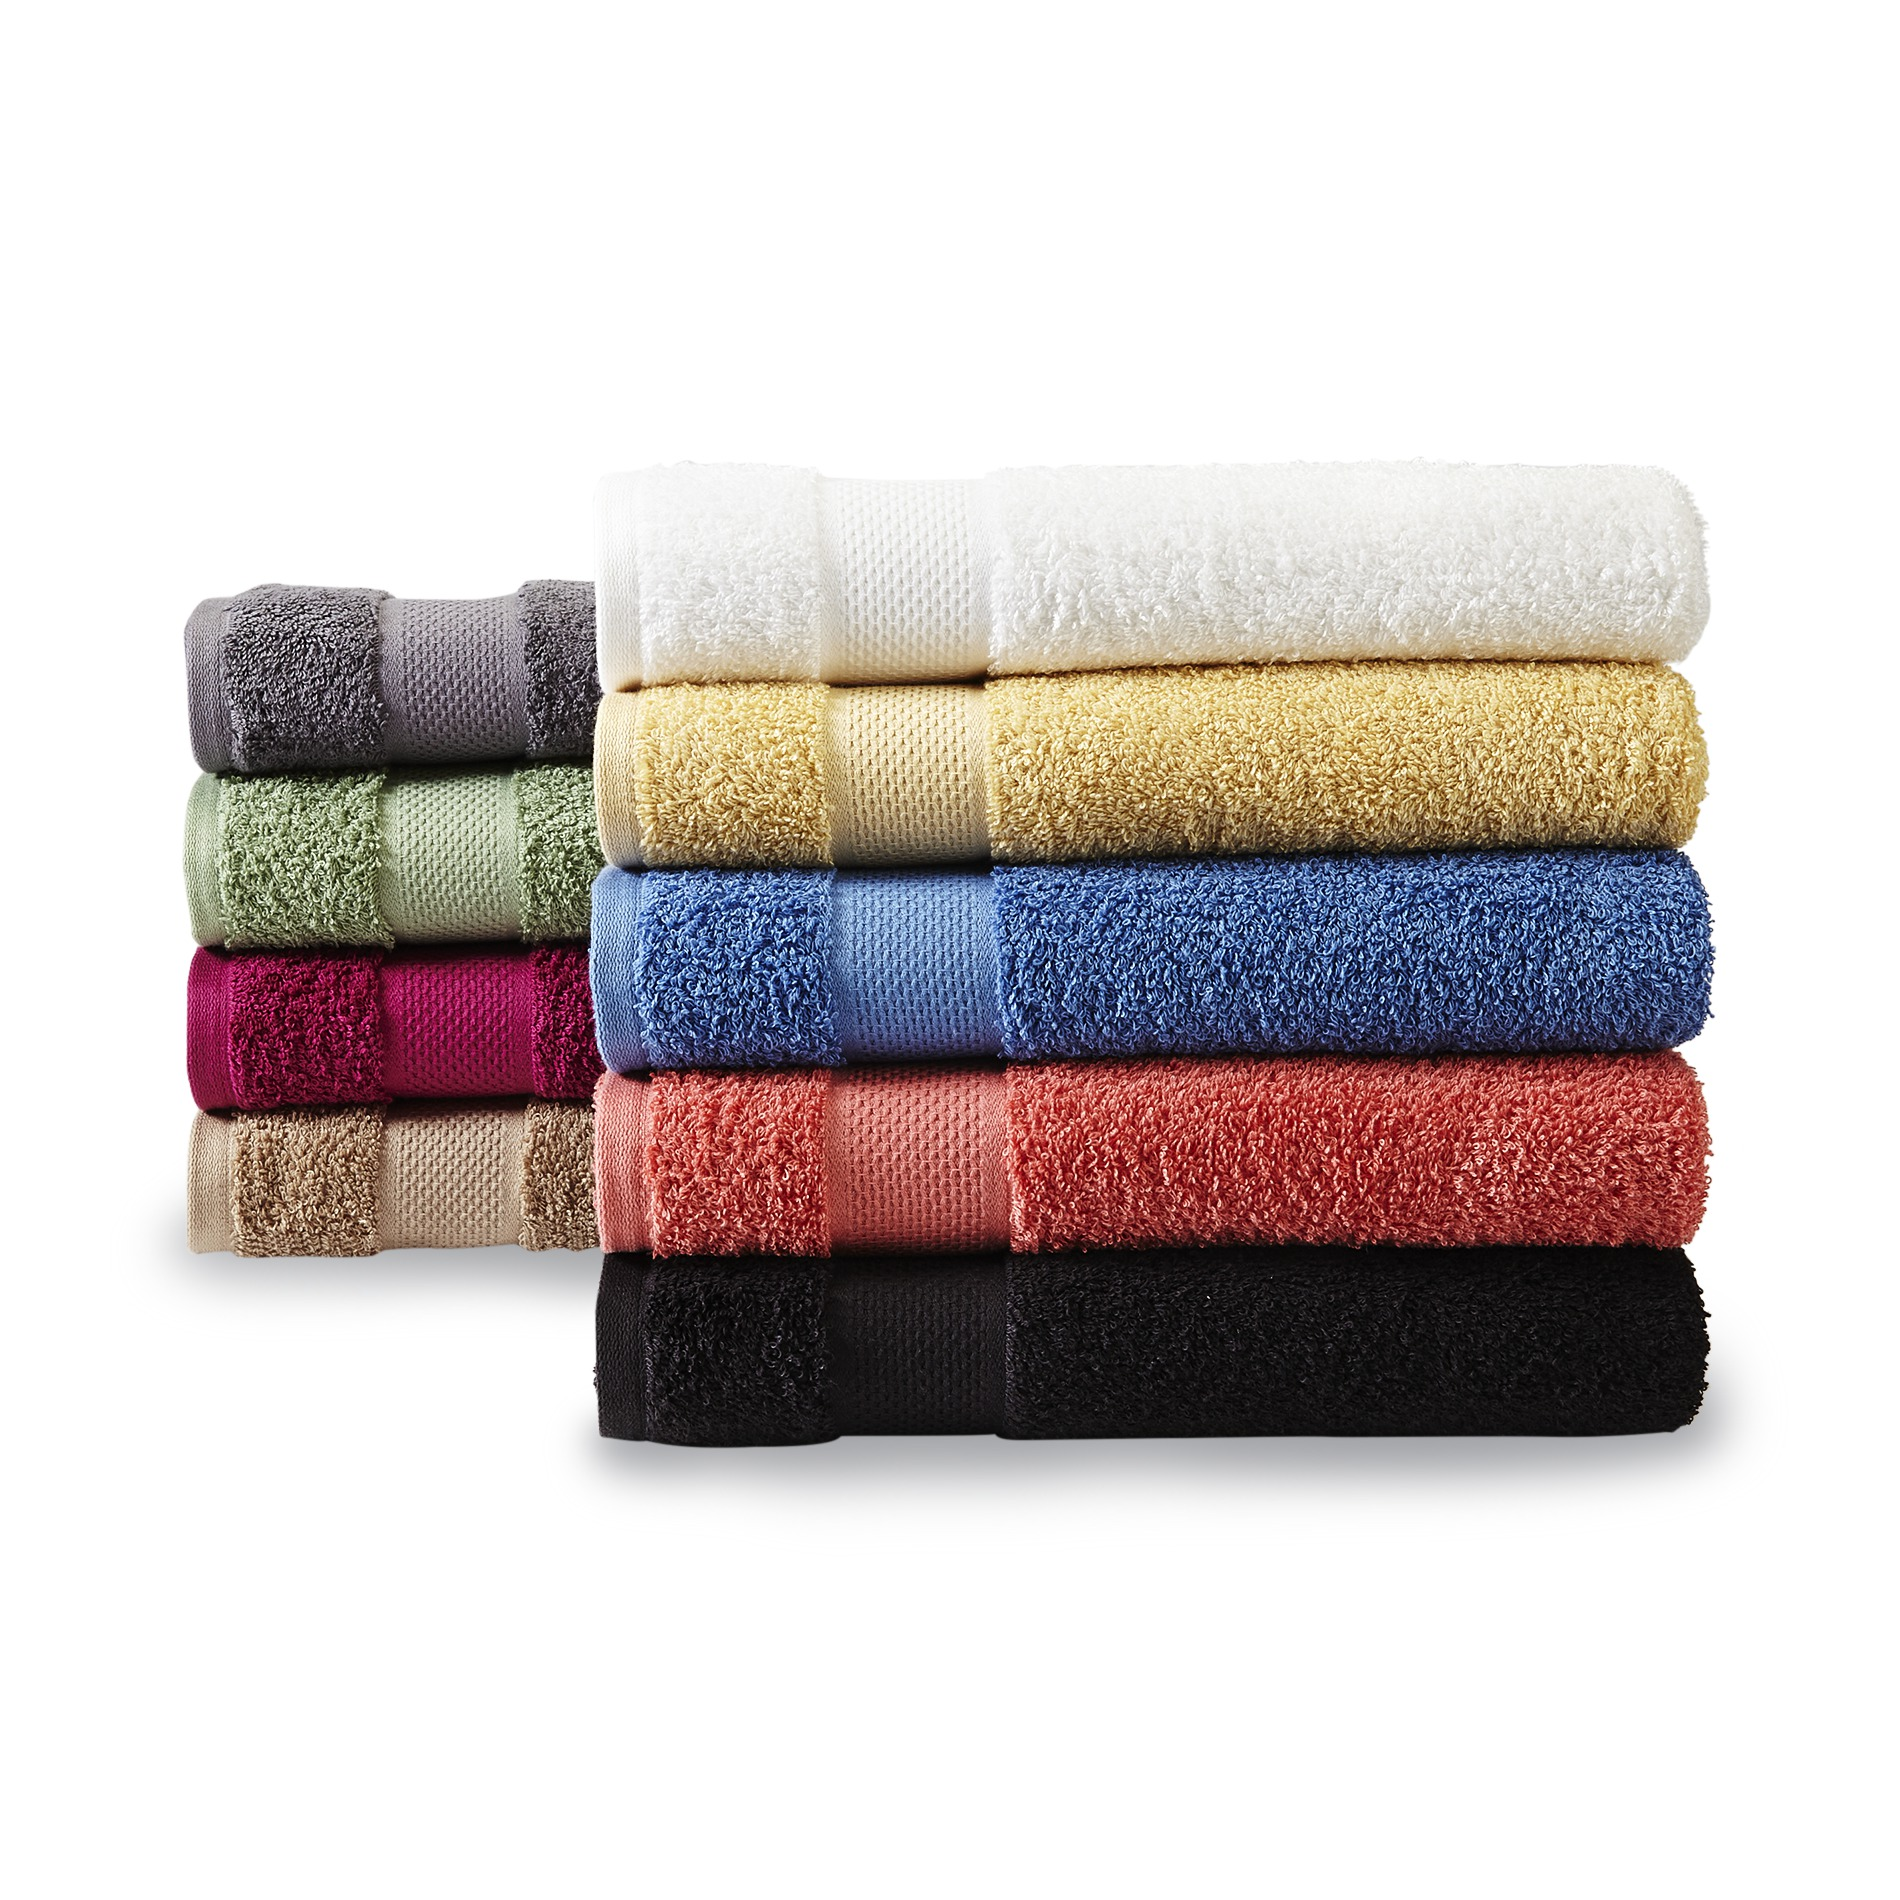 Colormate Ring Spun Cotton Bath Towels Hand Washcloths